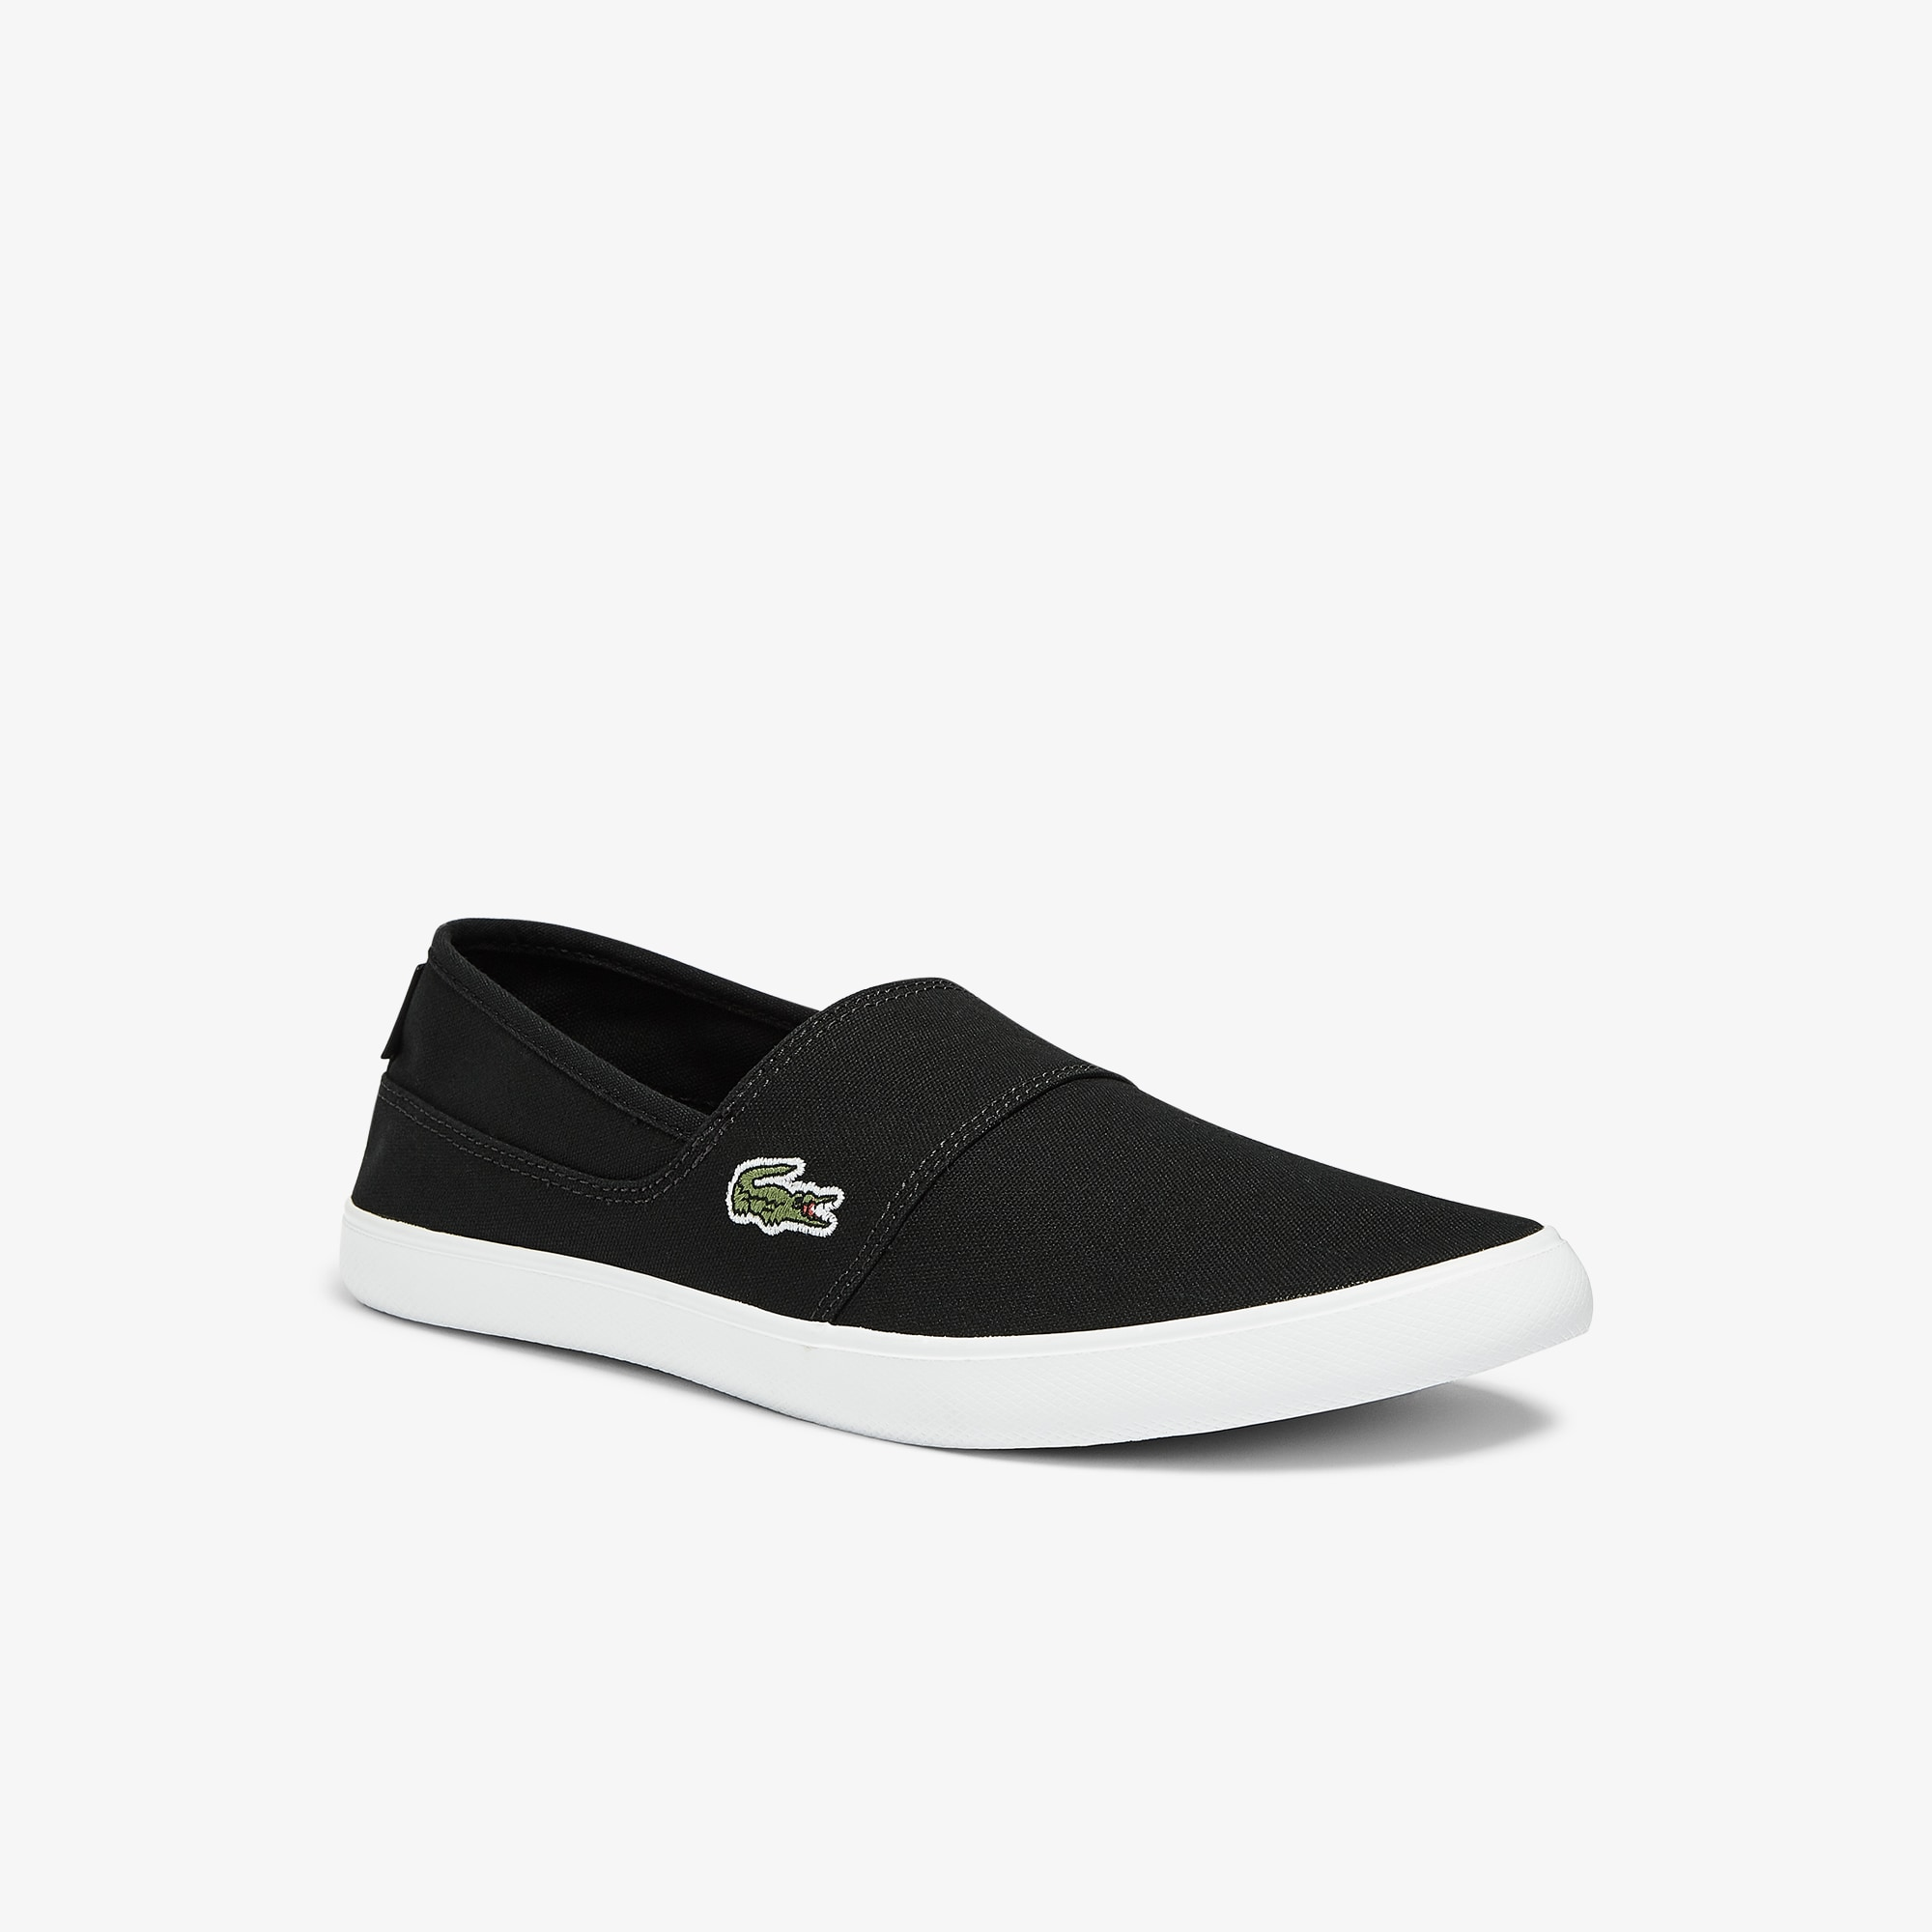 Collection Chaussures Femme Femme Femme Chaussures Chaussures Collection Lacoste Lacoste Collection OWUqATBH